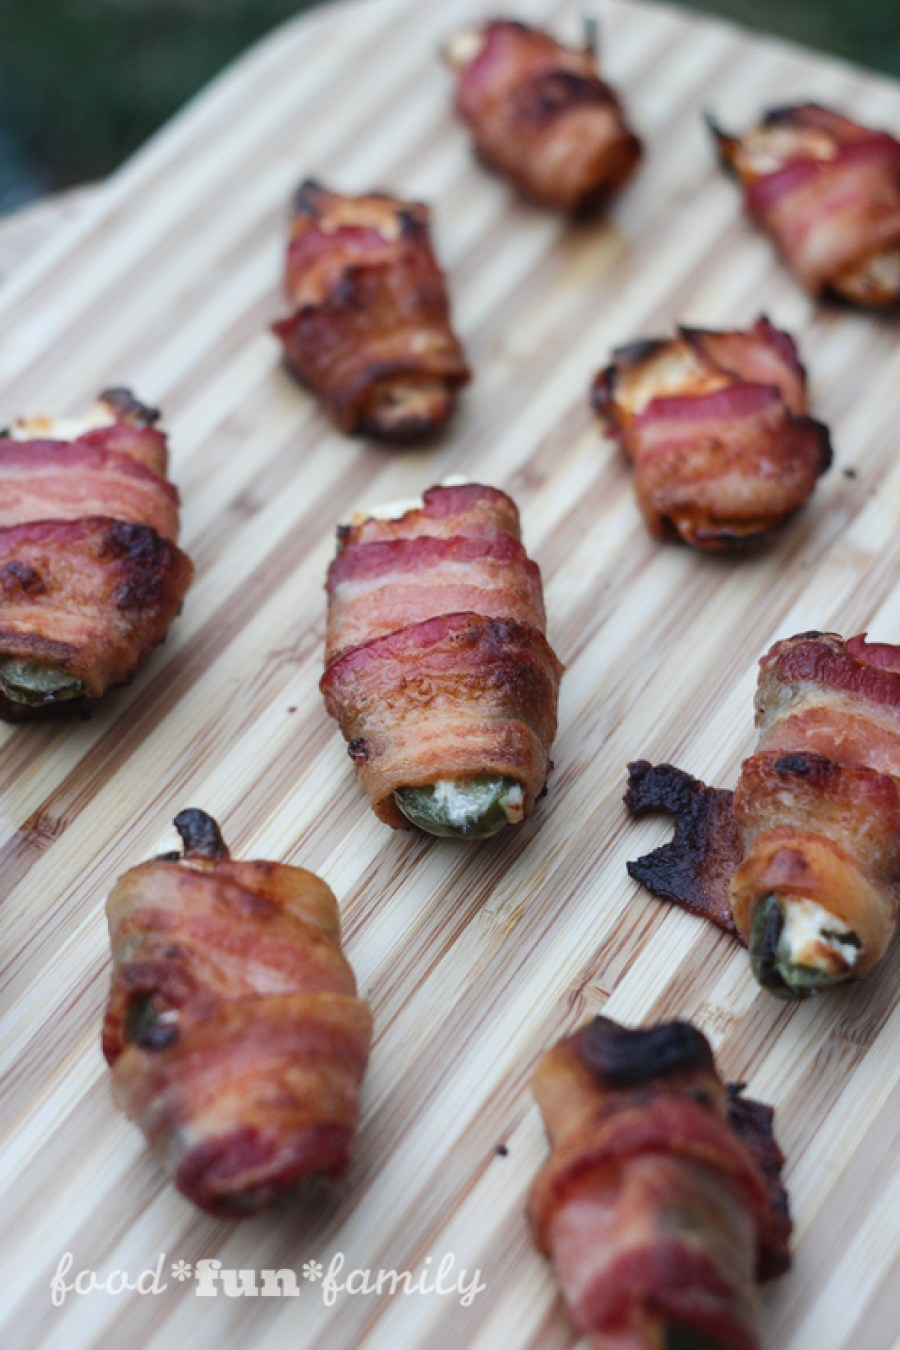 Bacon-wrapped jalapeño poppers - an easy and tasty appetizer or finger food